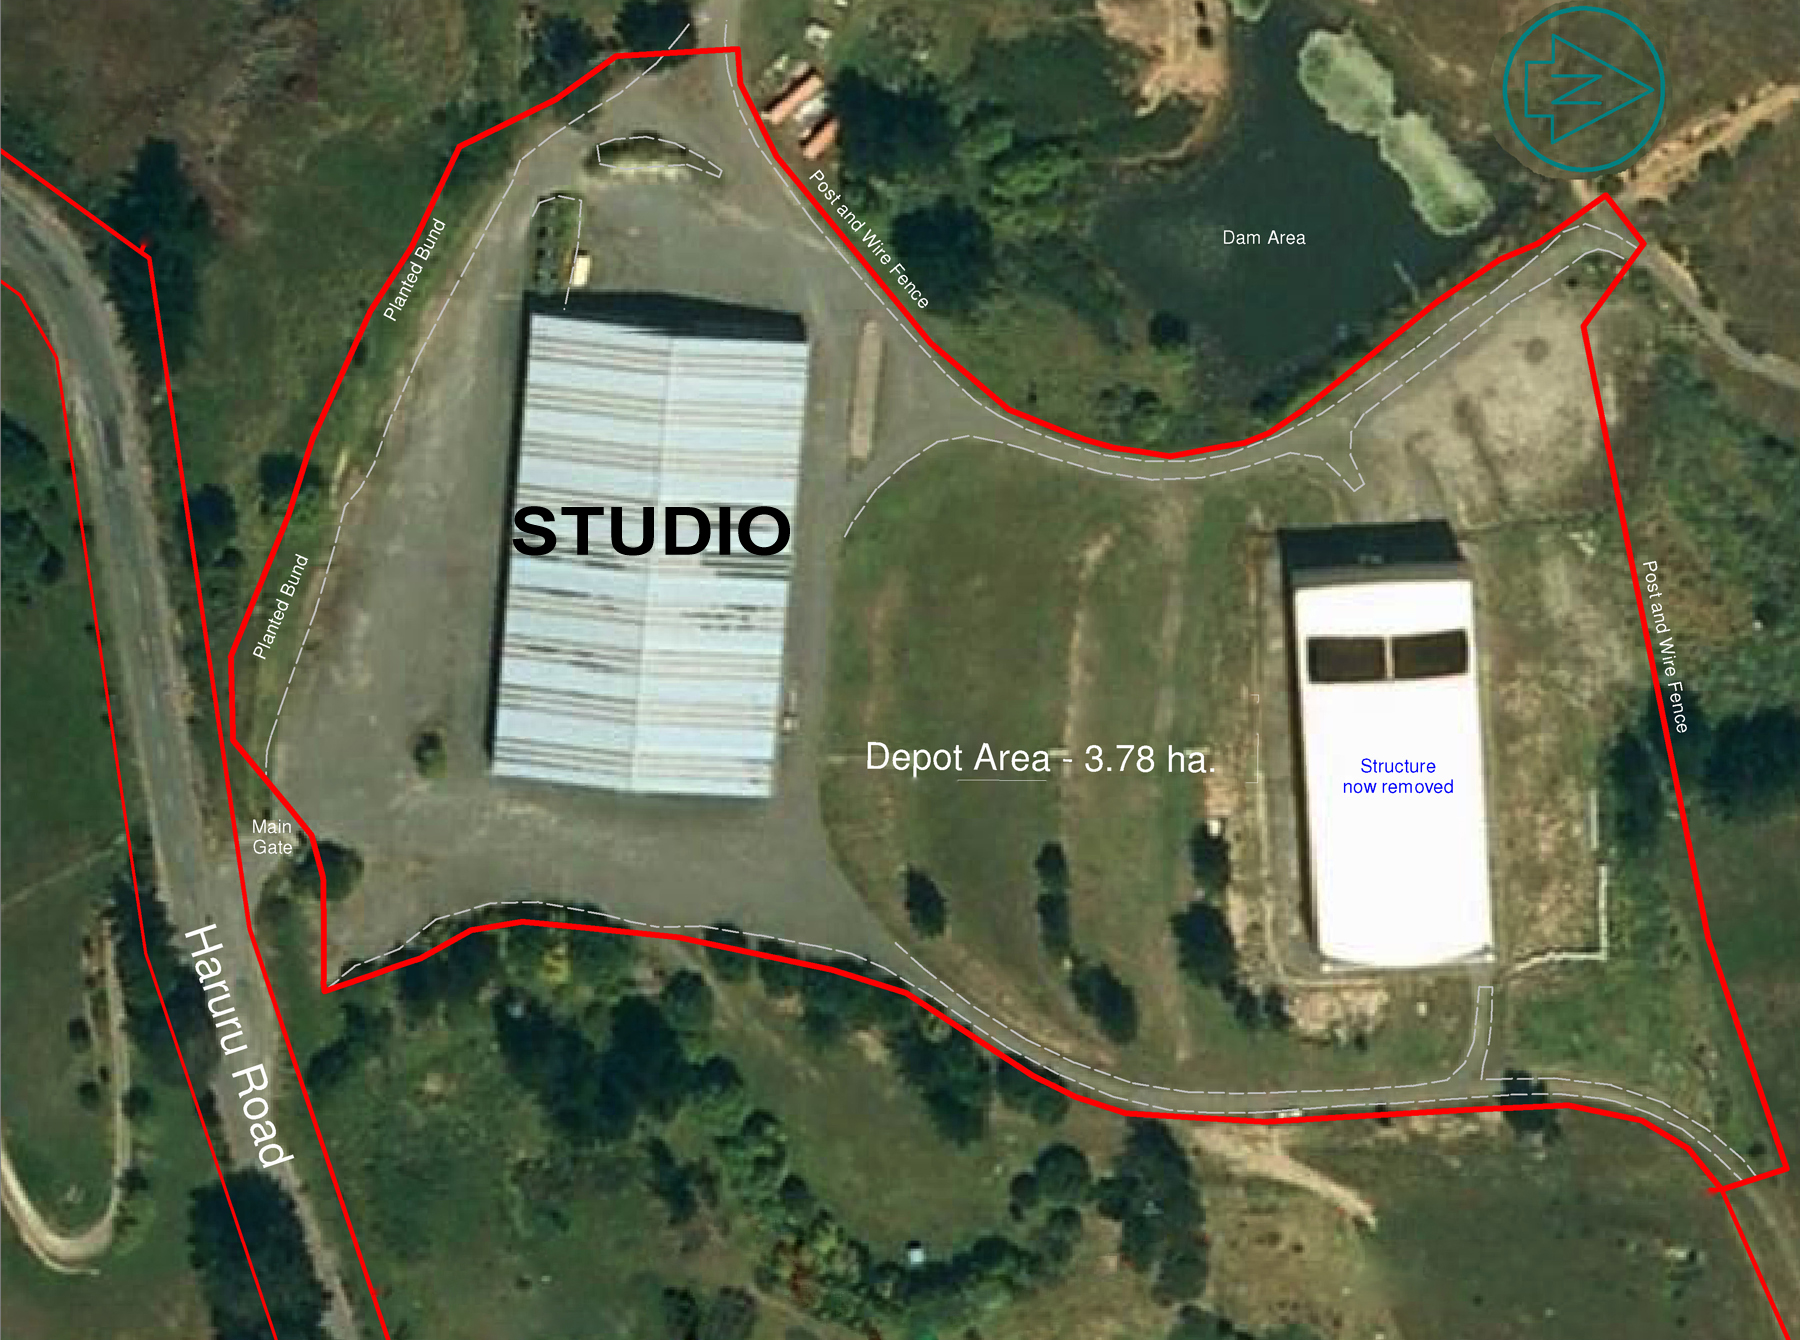 Kelly Park Film Studio Aerial 2014 (studio 2 now removed)